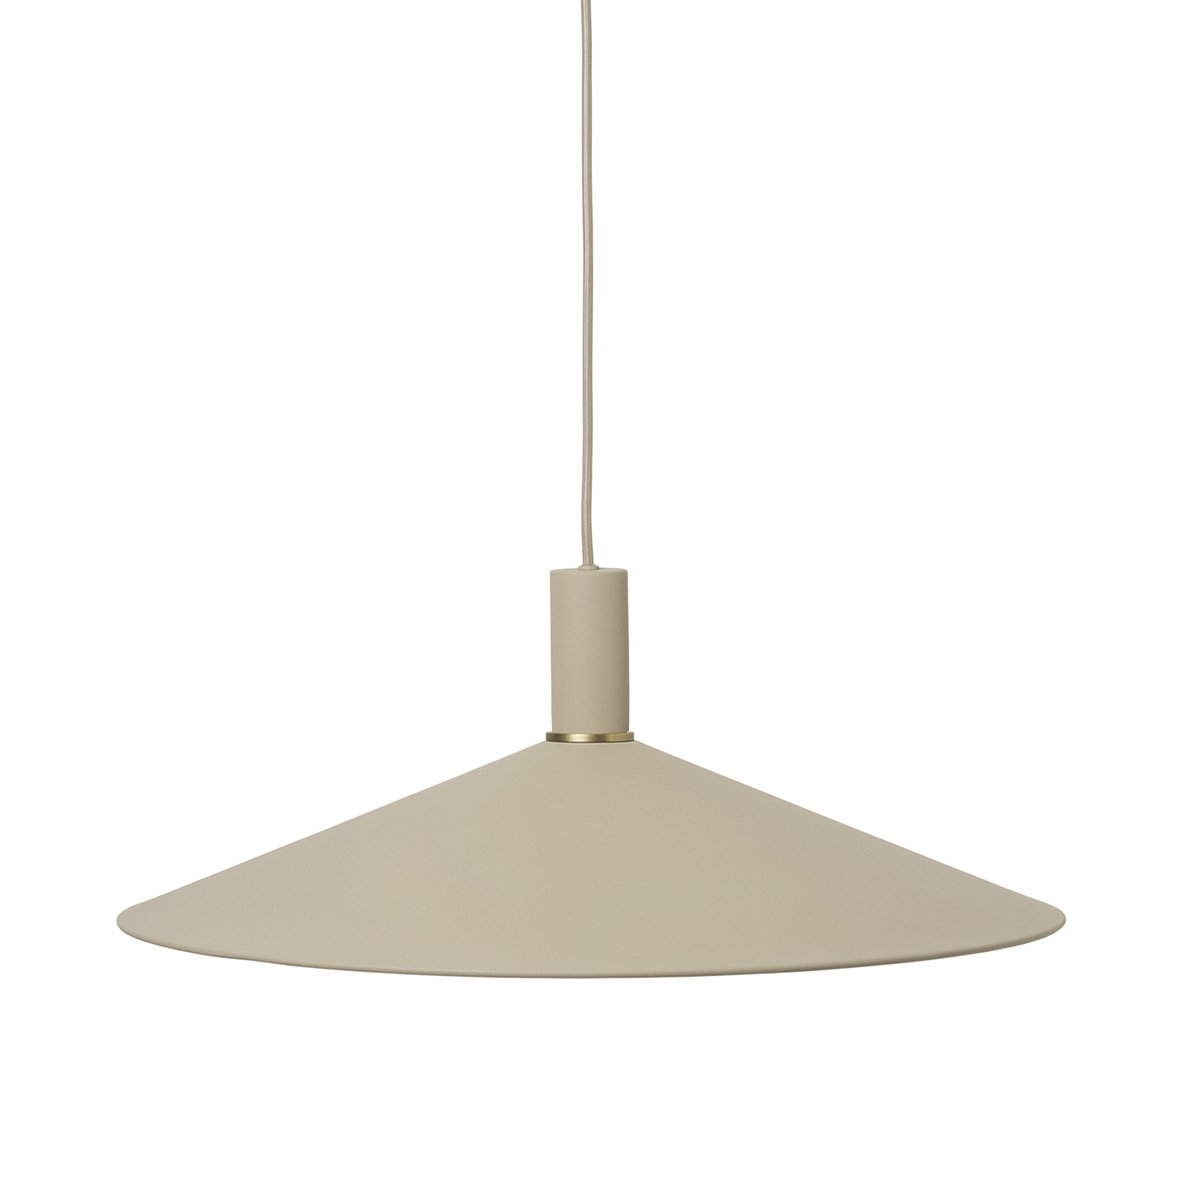 Ferm Living Collect Angle Cashmere Low Hanglamp - Cashmere